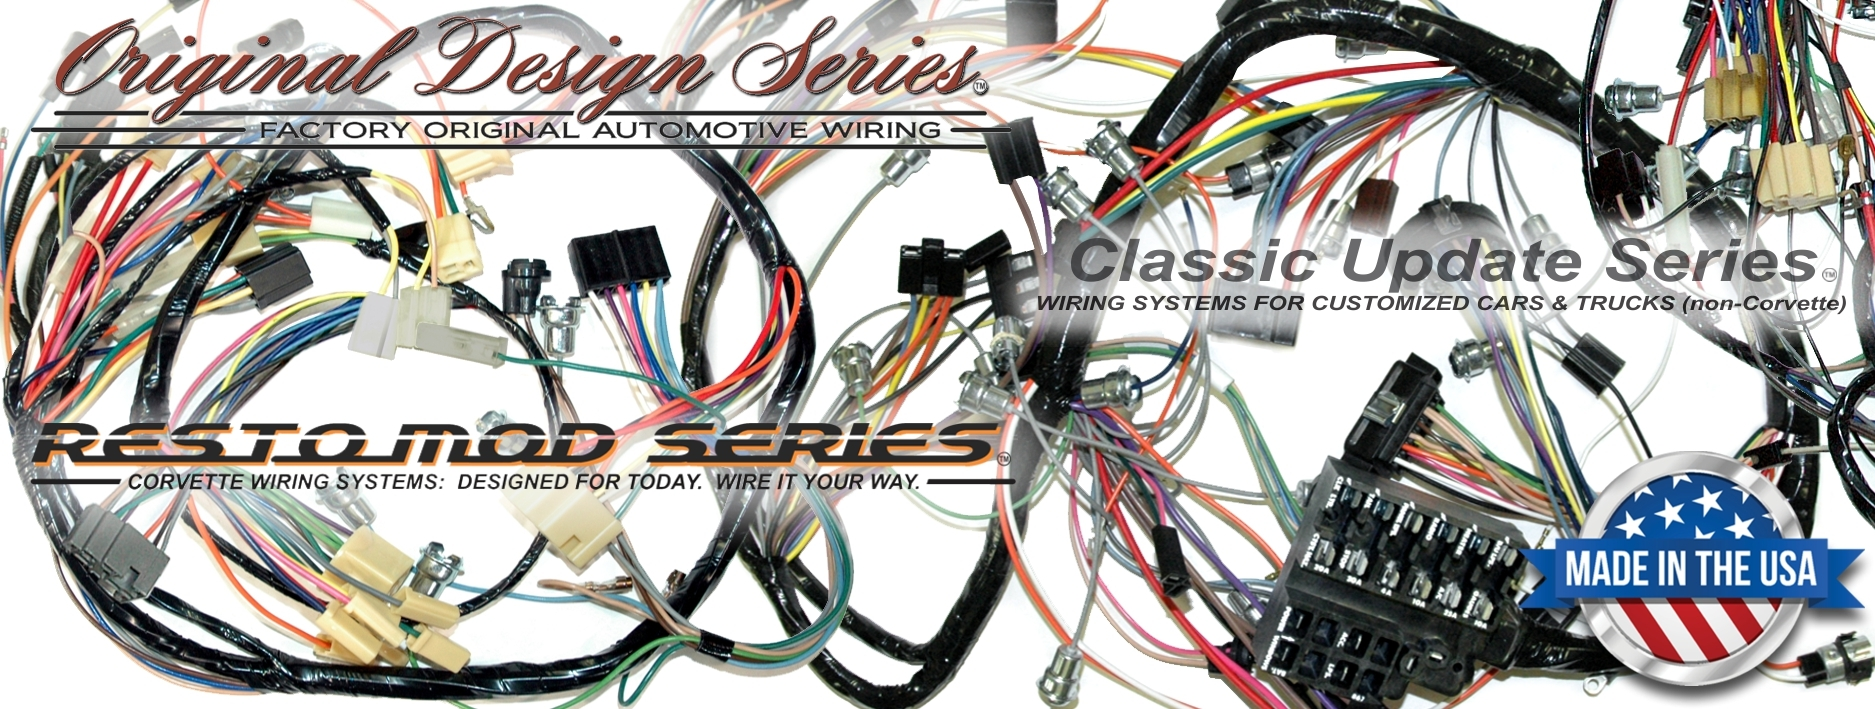 new header wiring_harnesses exact oem reproduction wiring harnesses and restomod wiring how long does it take to replace a wiring harness at soozxer.org